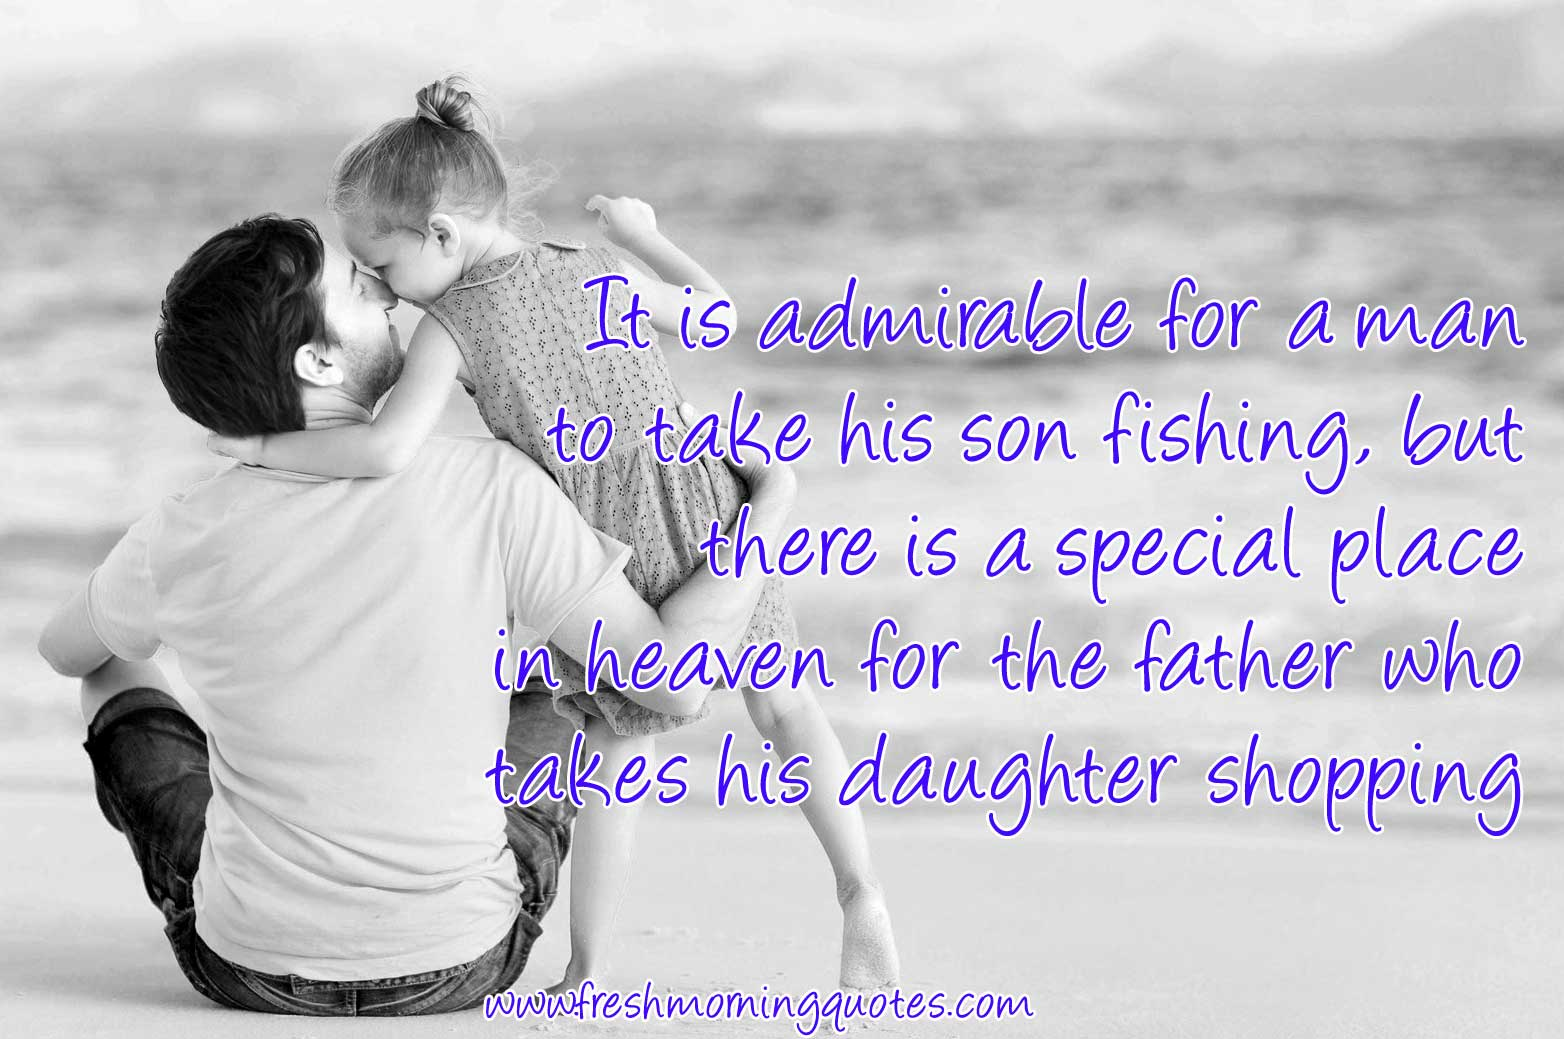 50 Sweetest Father Daughter Quotes with Images   Freshmorningquotes 50 Sweetest Father Daughter Quotes with Images